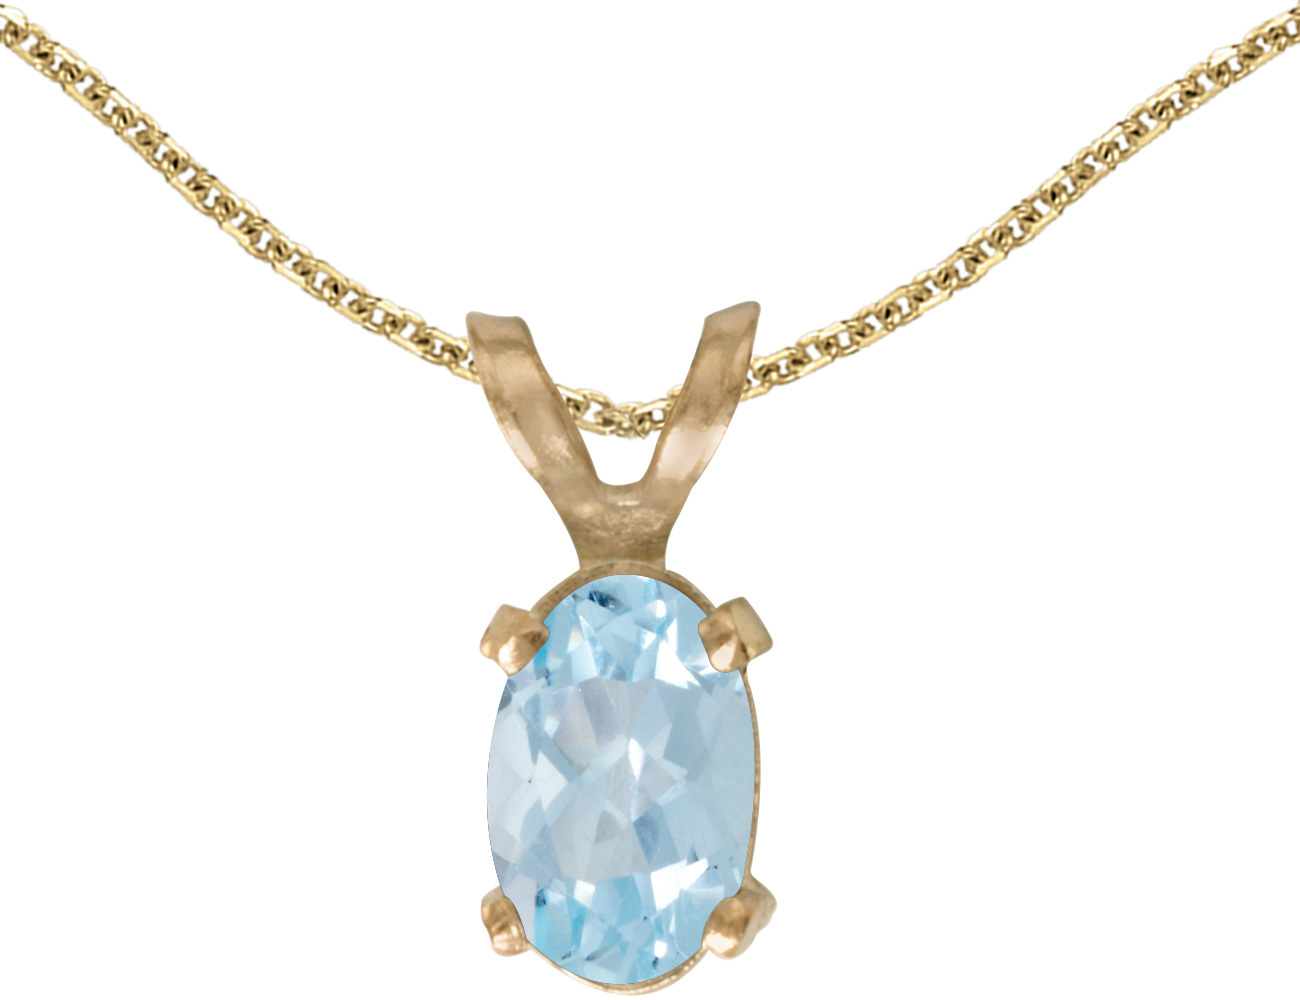 14k Yellow Gold Oval Aquamarine Pendant (Chain NOT included)